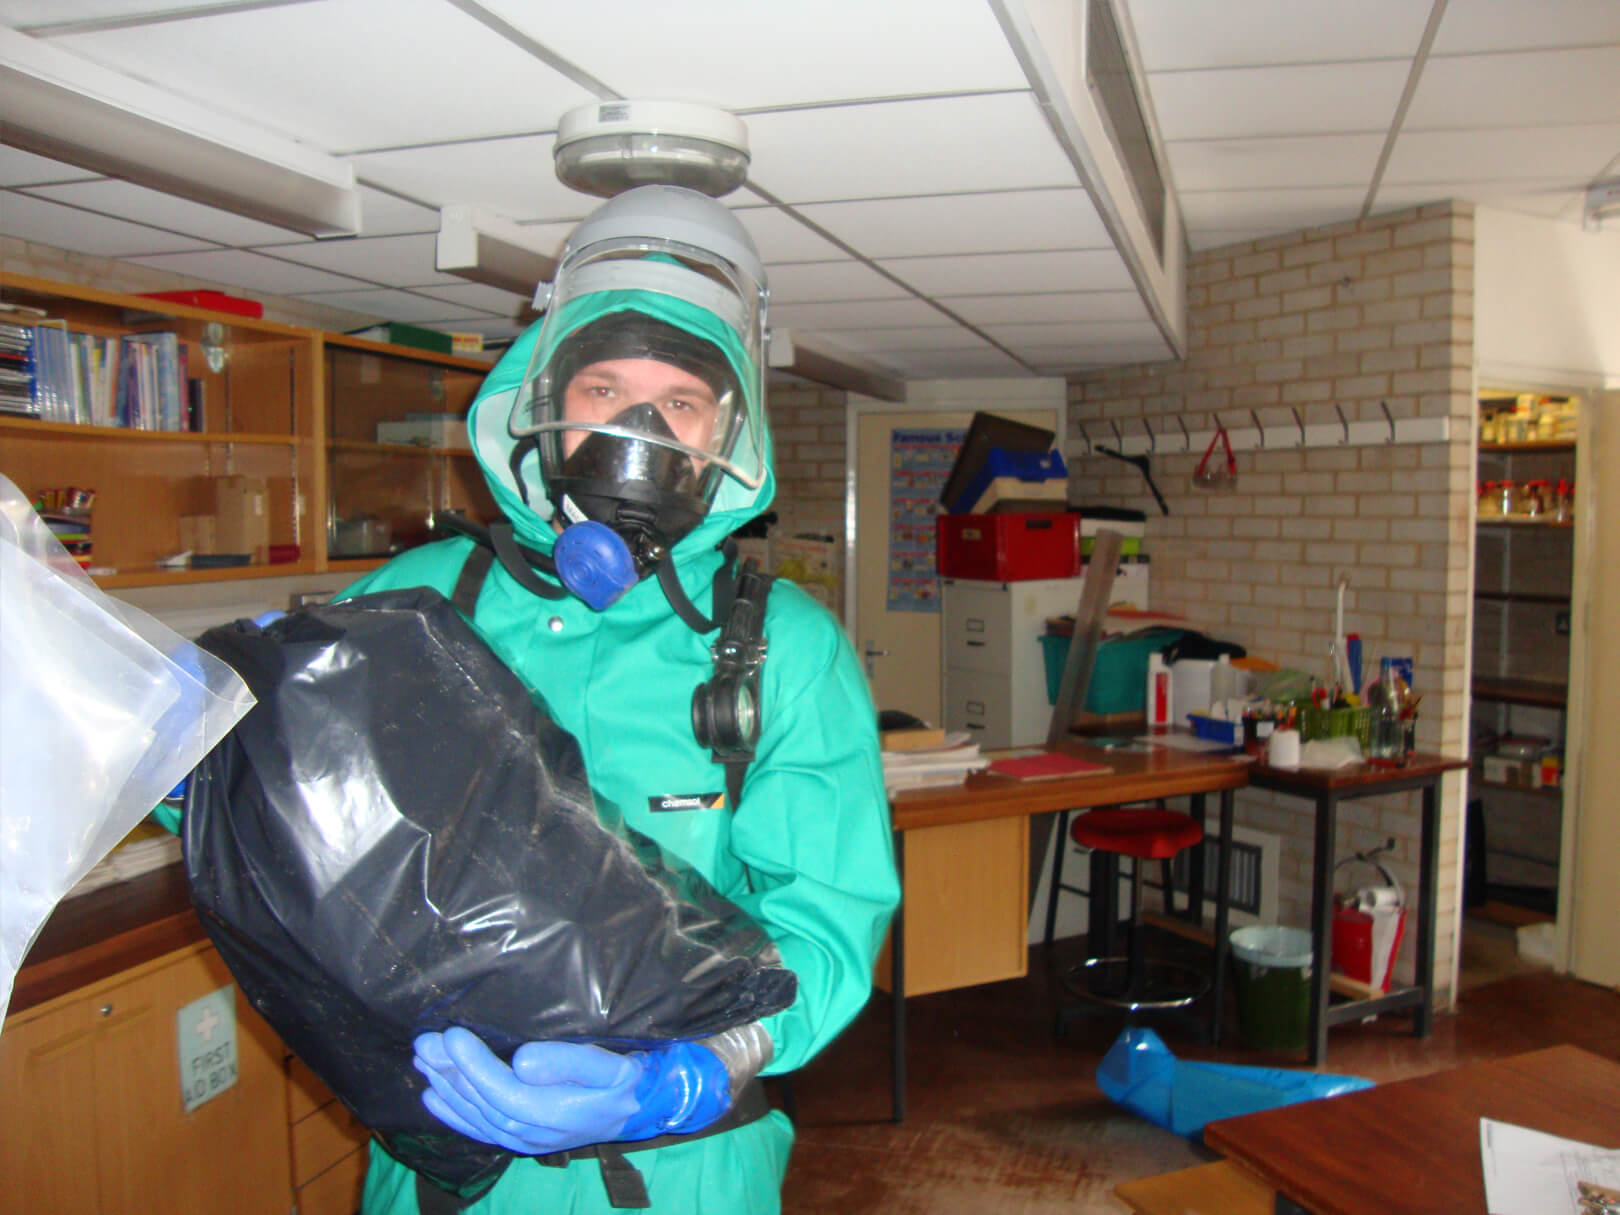 Technician in Personal Protective Equipment